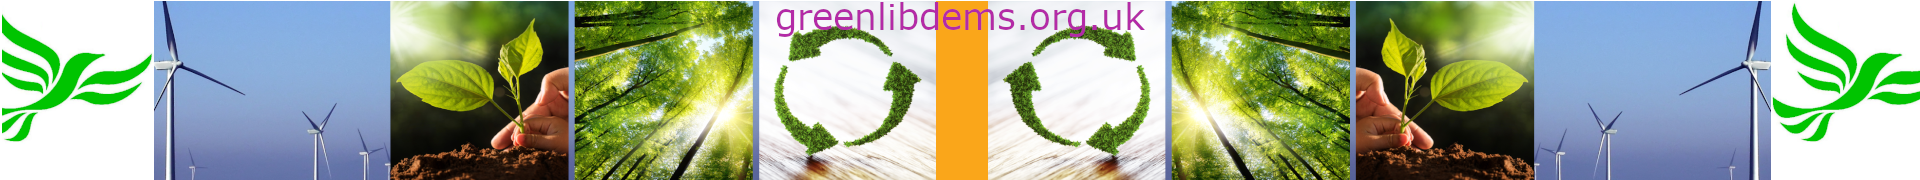 GLD top banner 20211101d (greenlibdems.org.uk)